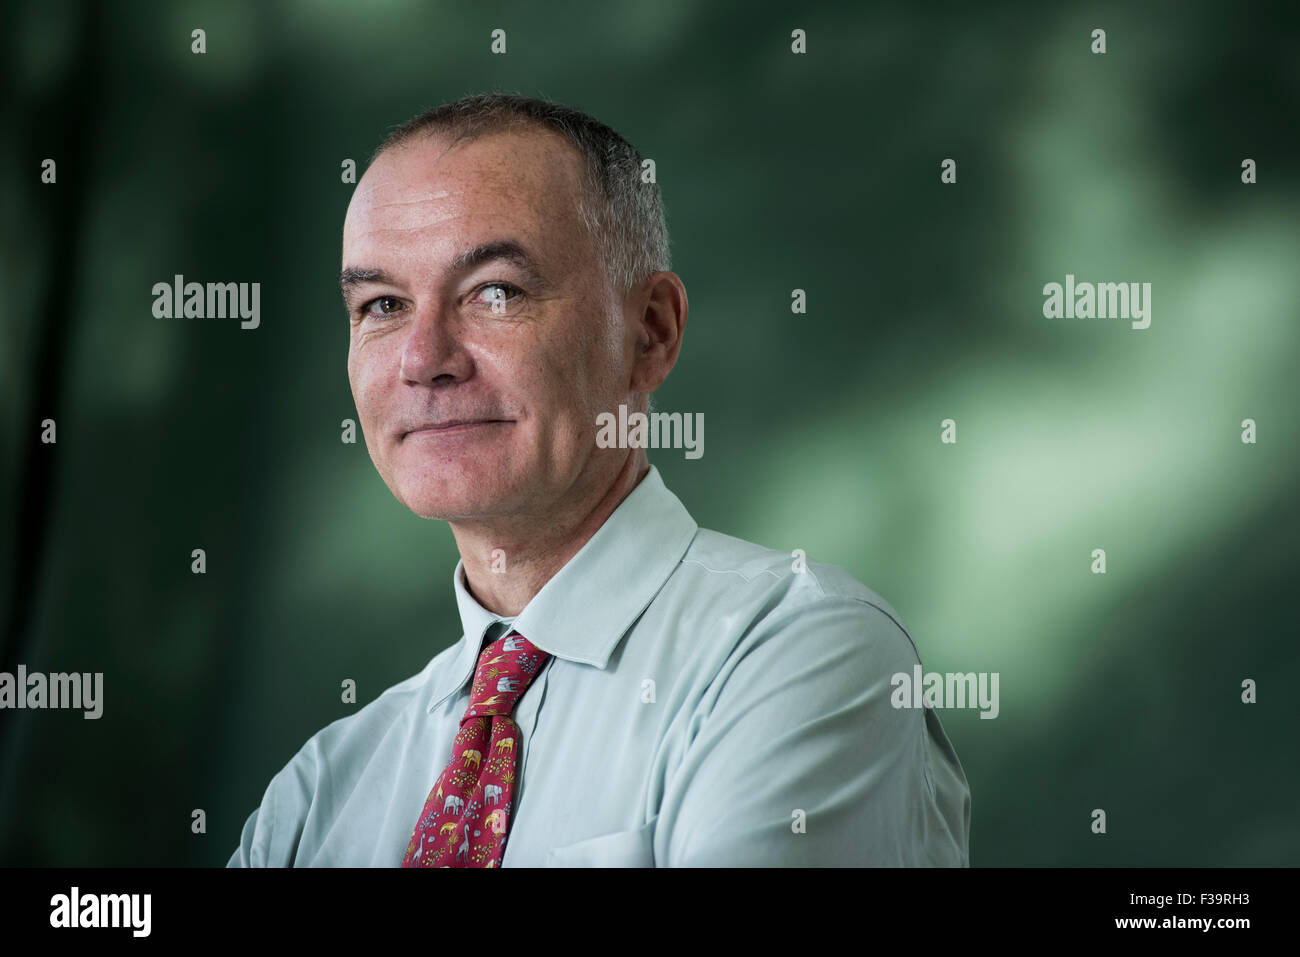 Historian and an arabist Jean-Pierre Filiu. - Stock Image